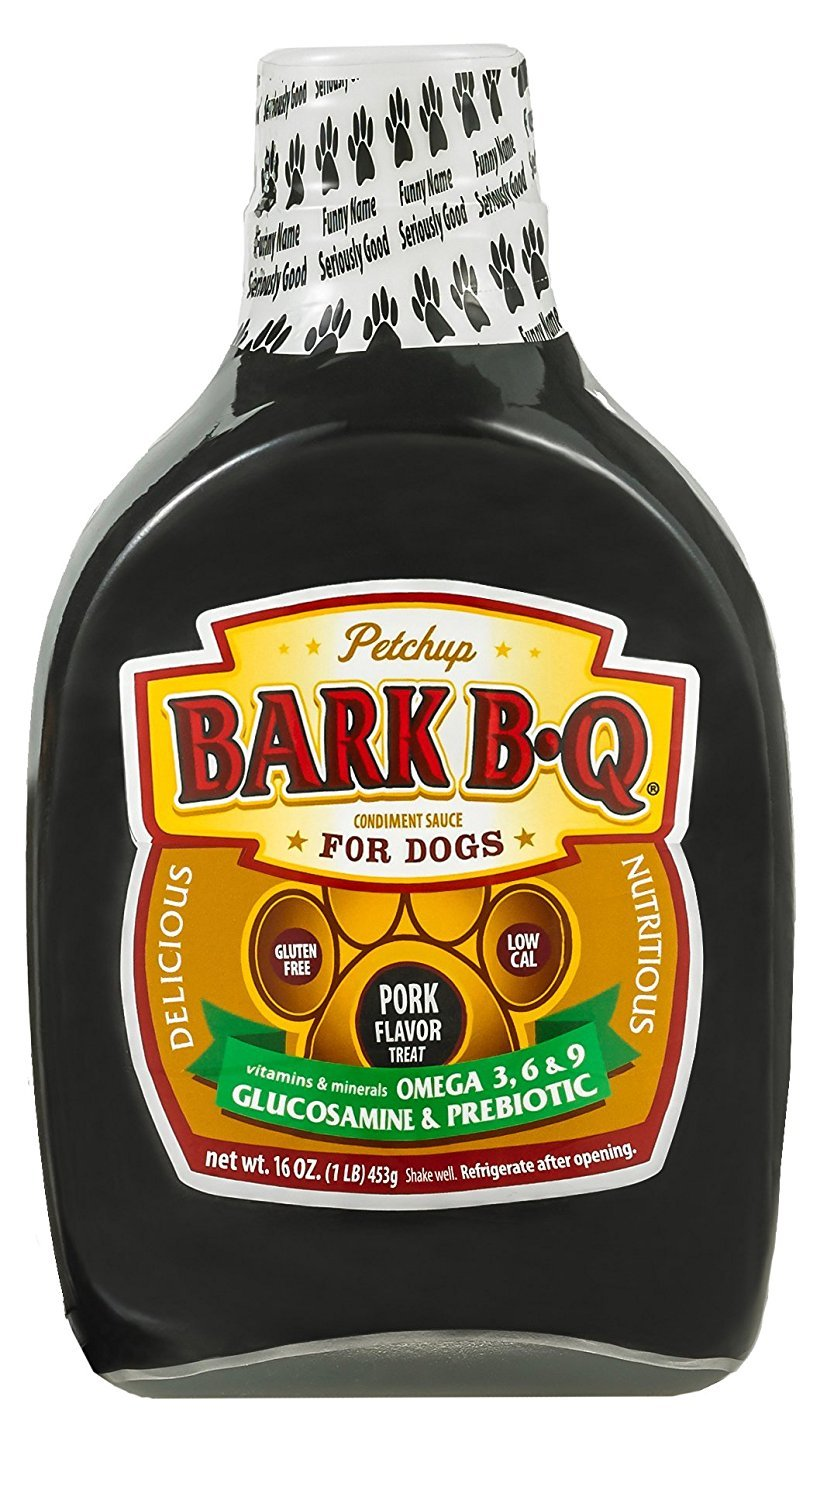 Petchup BARK B-Q Flavor Nutritional Dog Gravy Condiment - Gluten Free Best Dry Dog Food Topper with Natural, Healthy, and Holistic Formula for Adult Dogs. 16 oz. - 1 Bottle Pack by Petchup